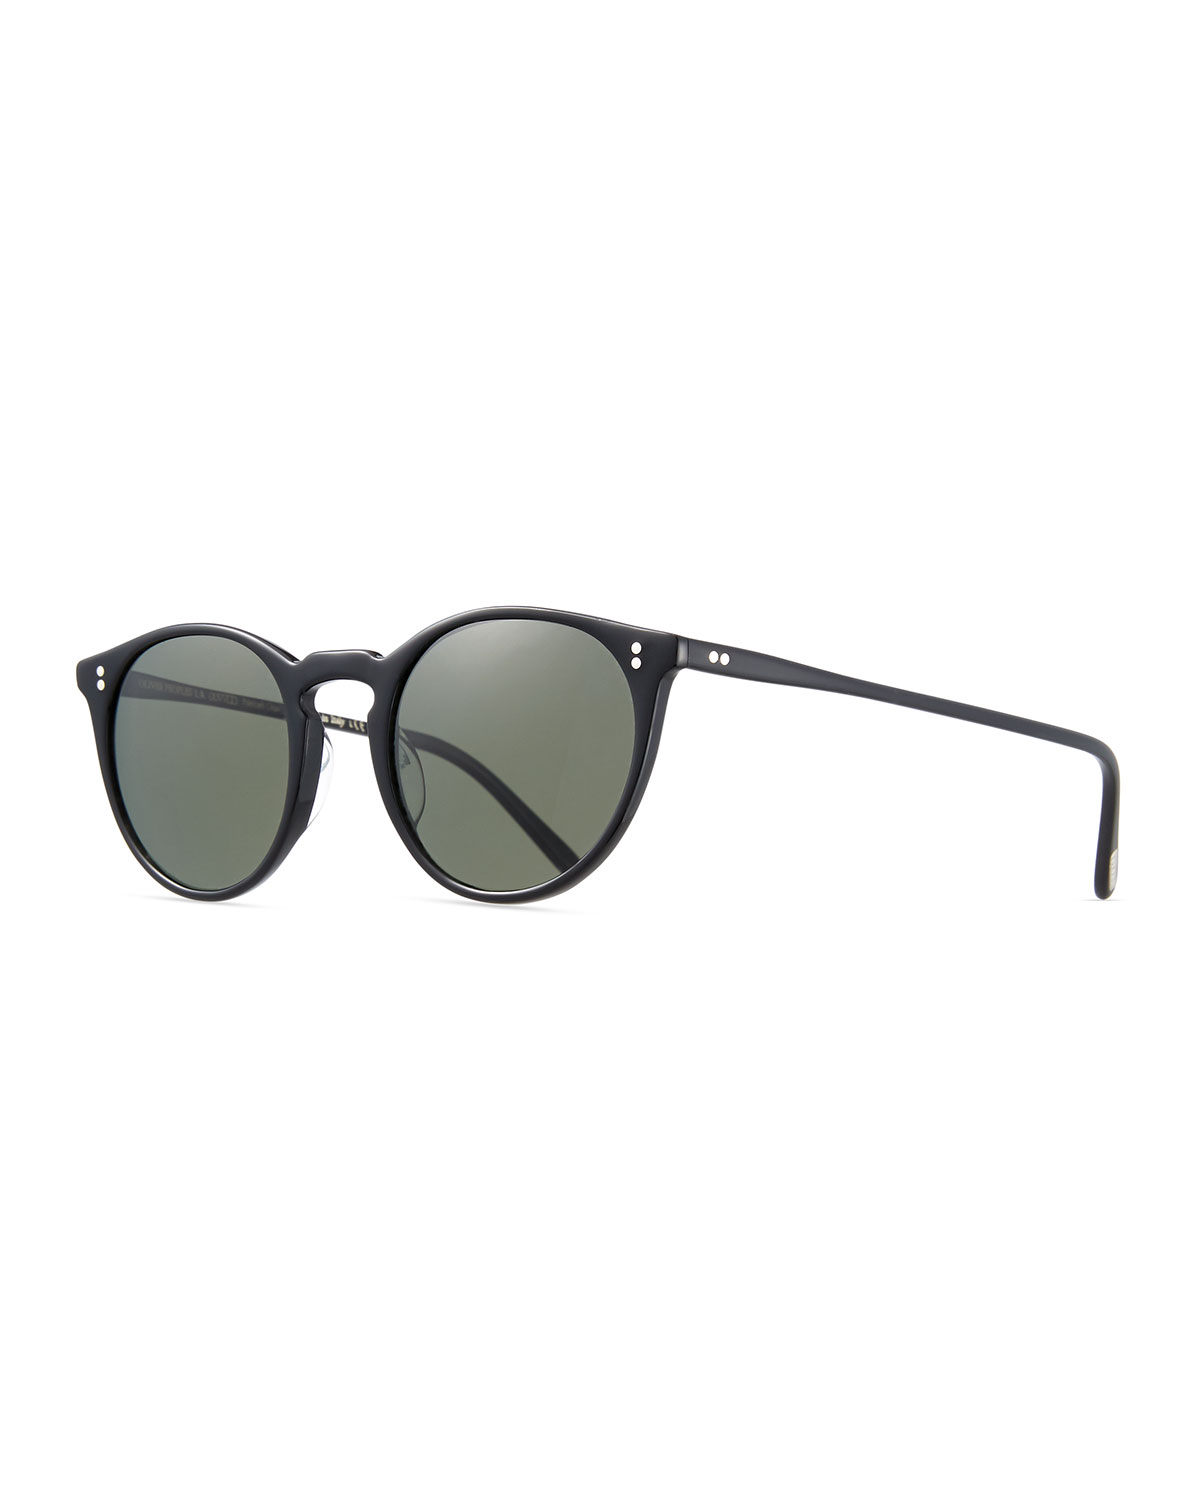 d74ffc1eb4 Oliver Peoples Men s O Malley NYC Peaked Round Sunglasses